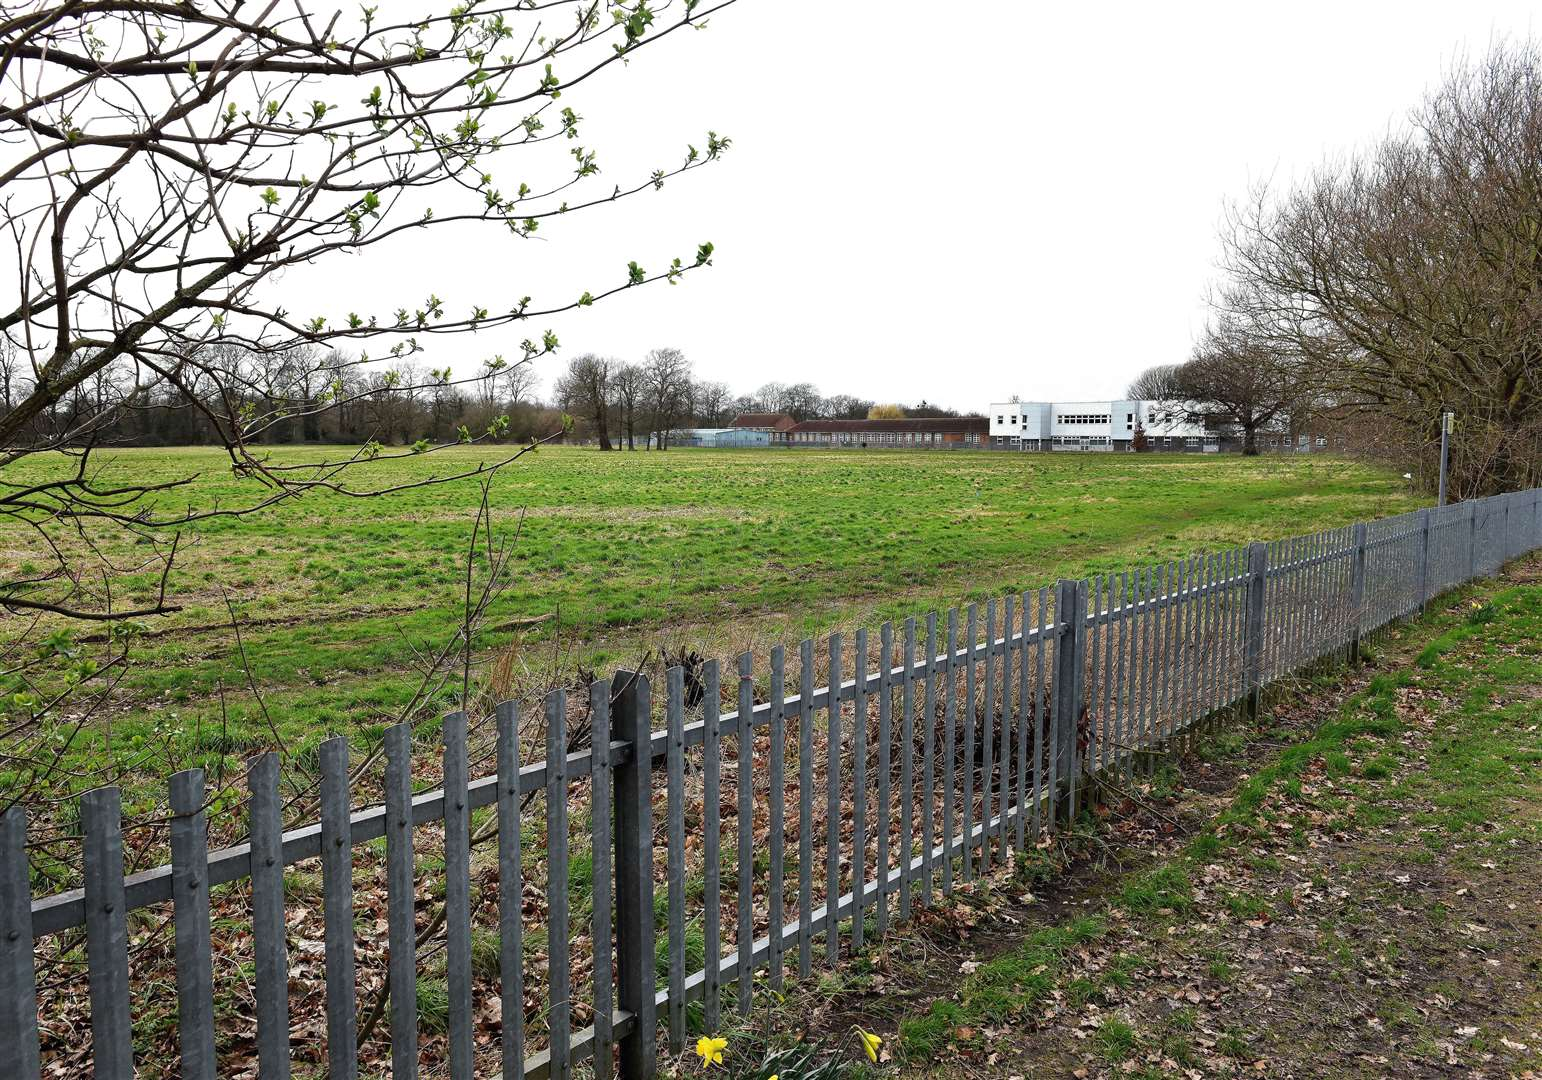 Council chiefs have backed plans to scale back the proposed development of land off Parkway in Gaywood.